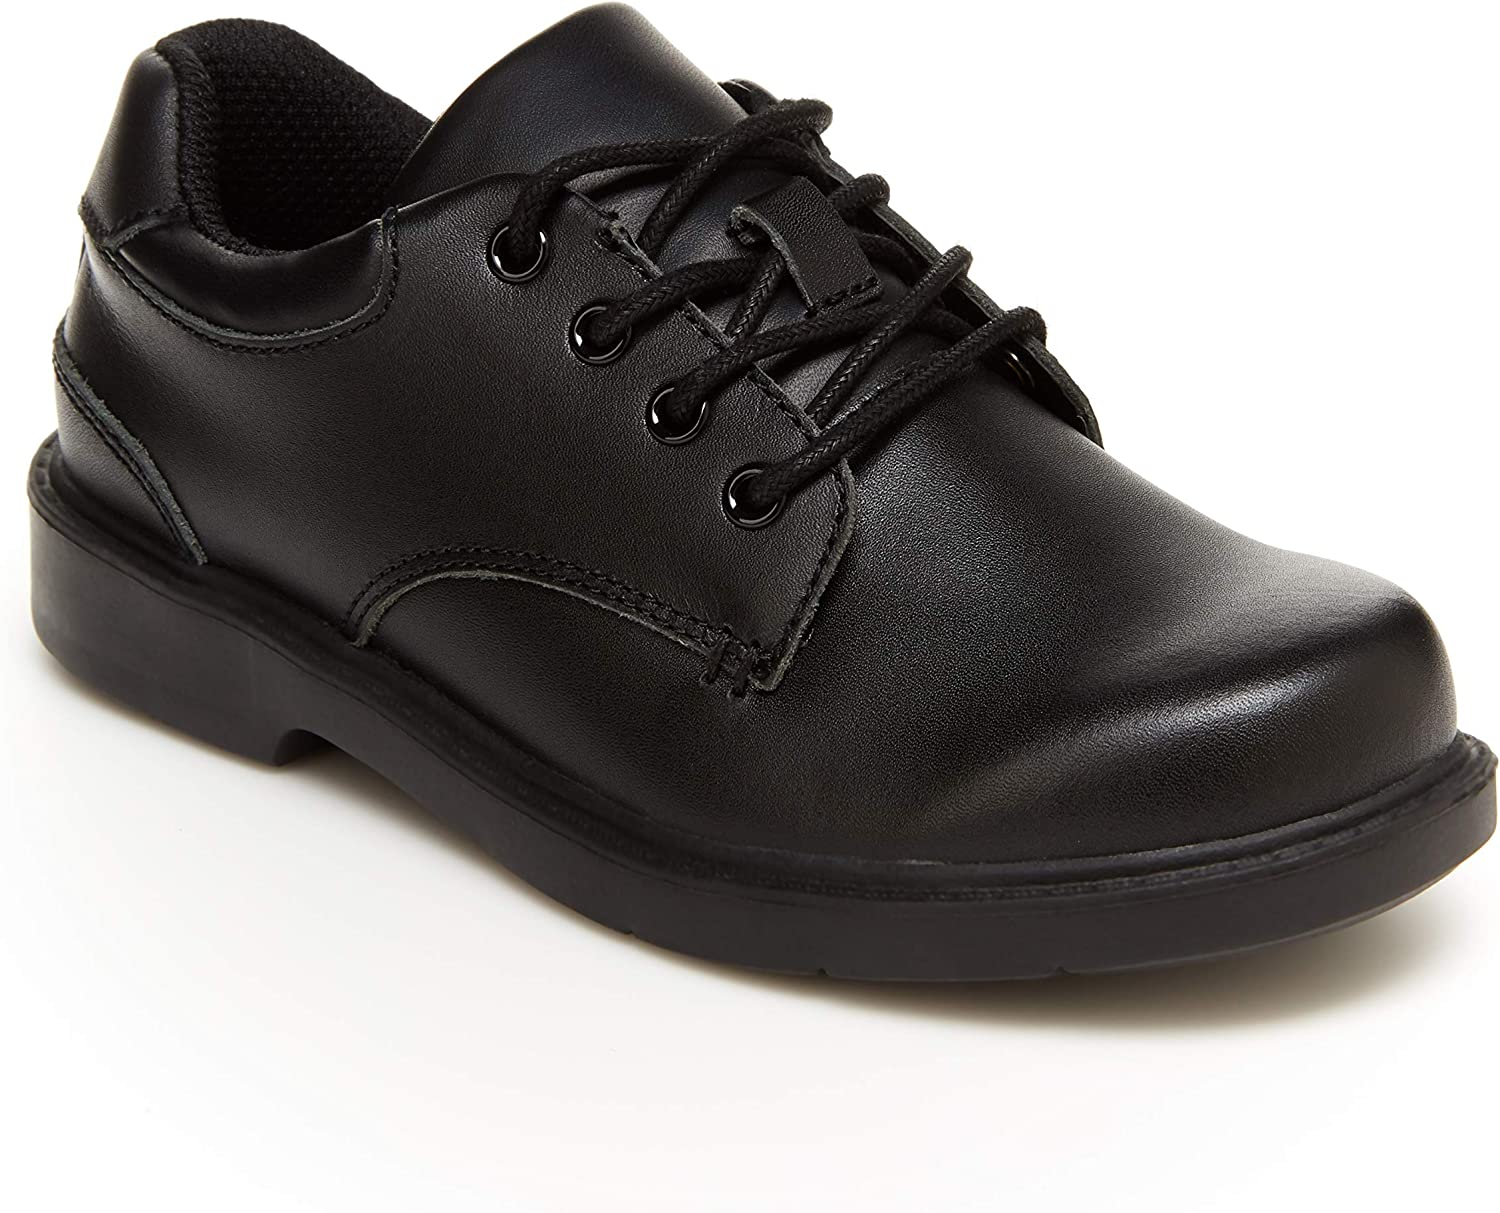 Stride Rite Unisex-Child Sr Murphy Kids' Laurence Loafer-Style Shoes, Black